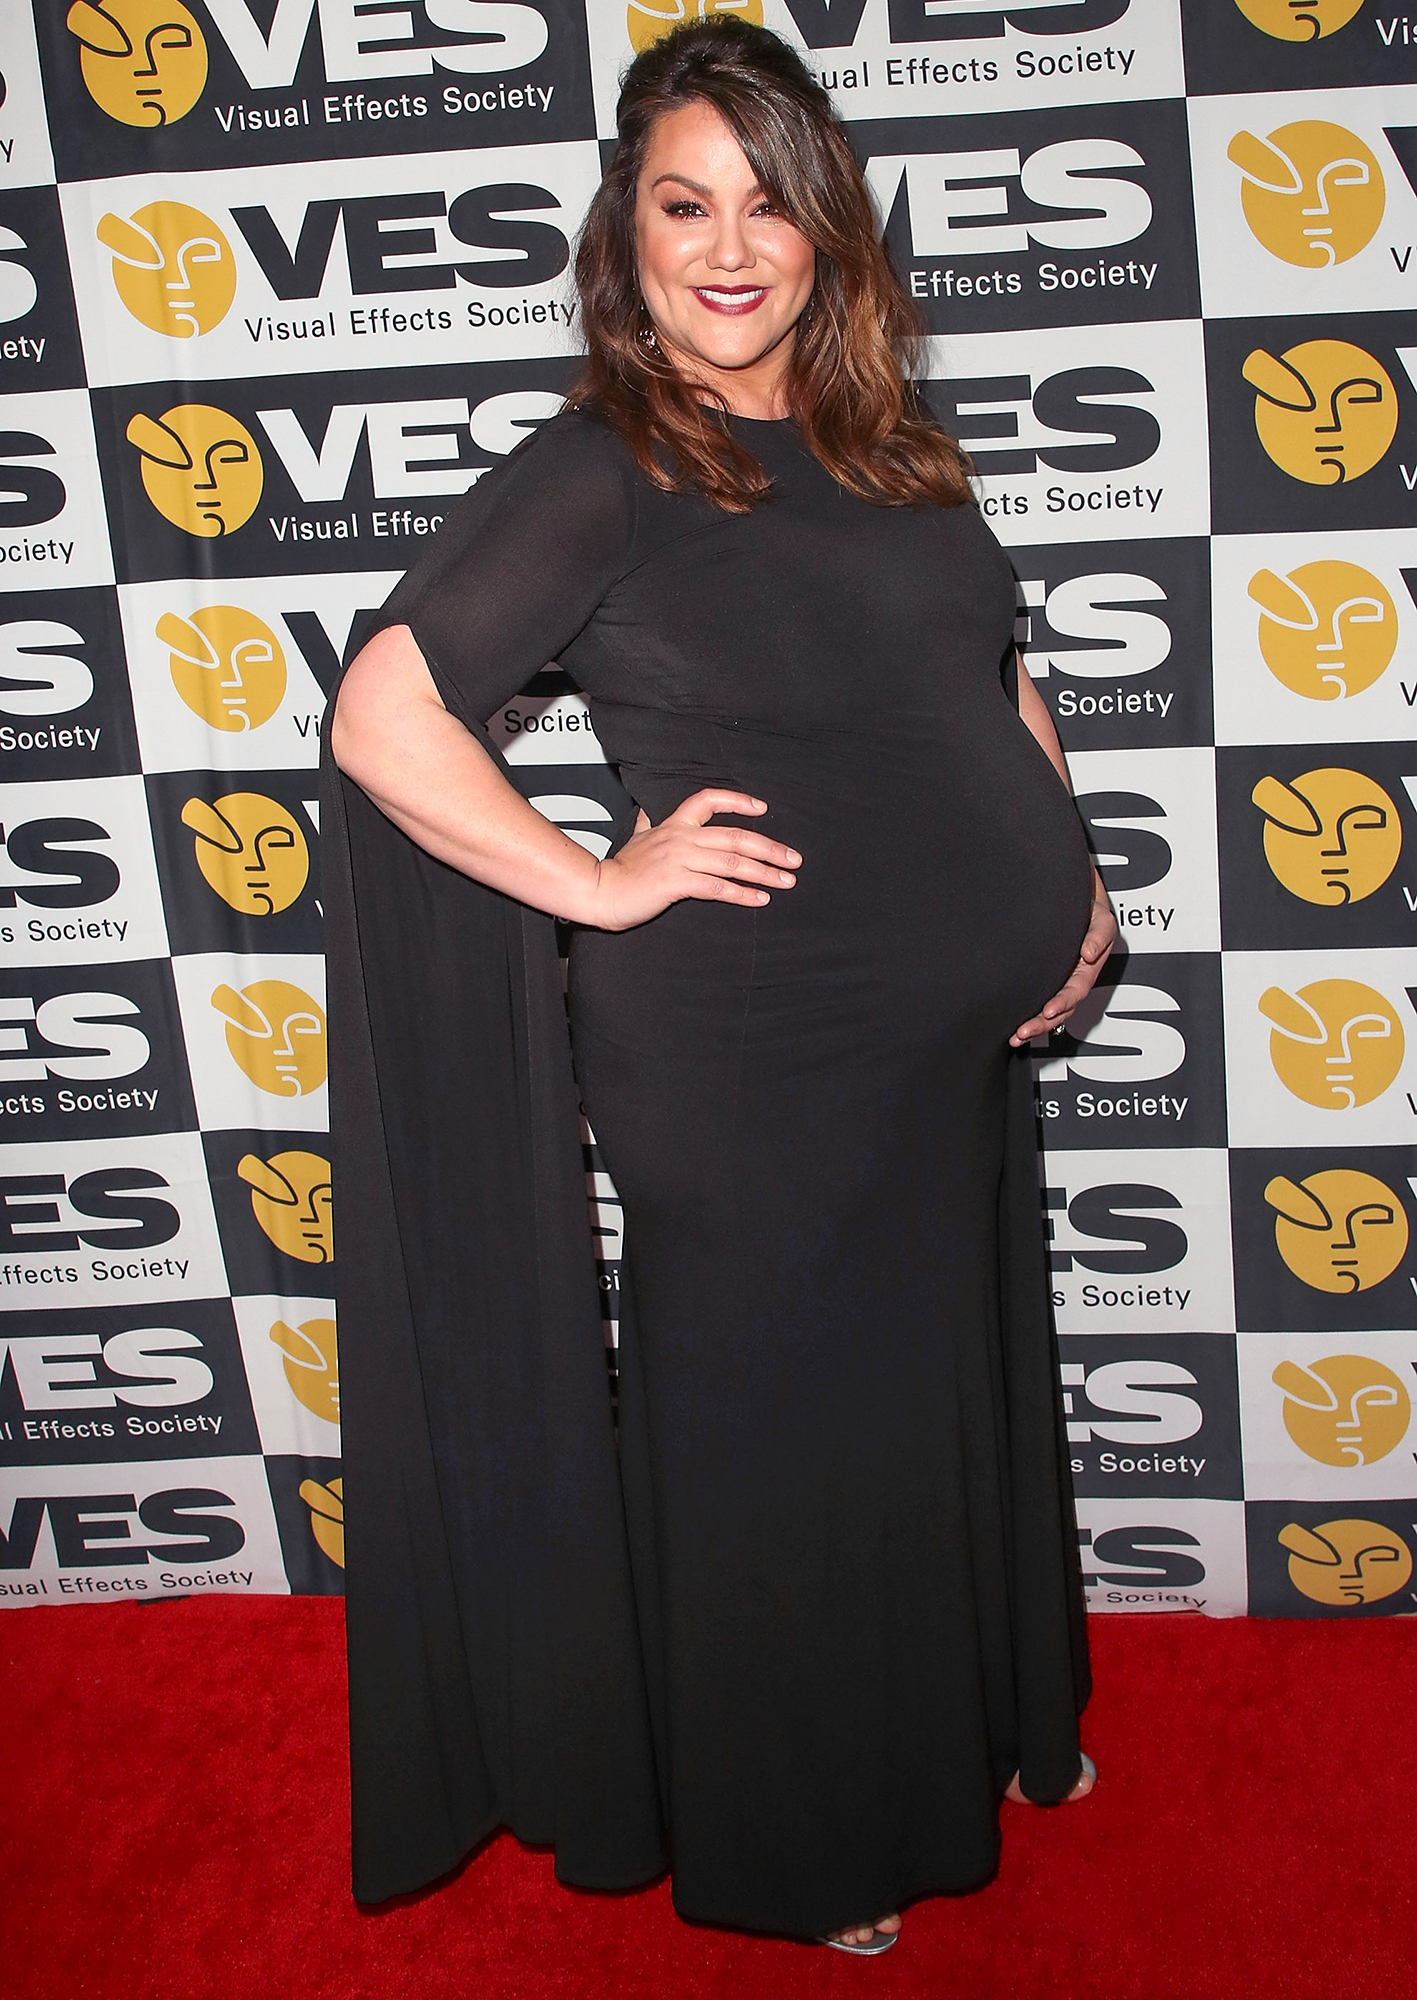 16th Annual VES Awards - Arrivals